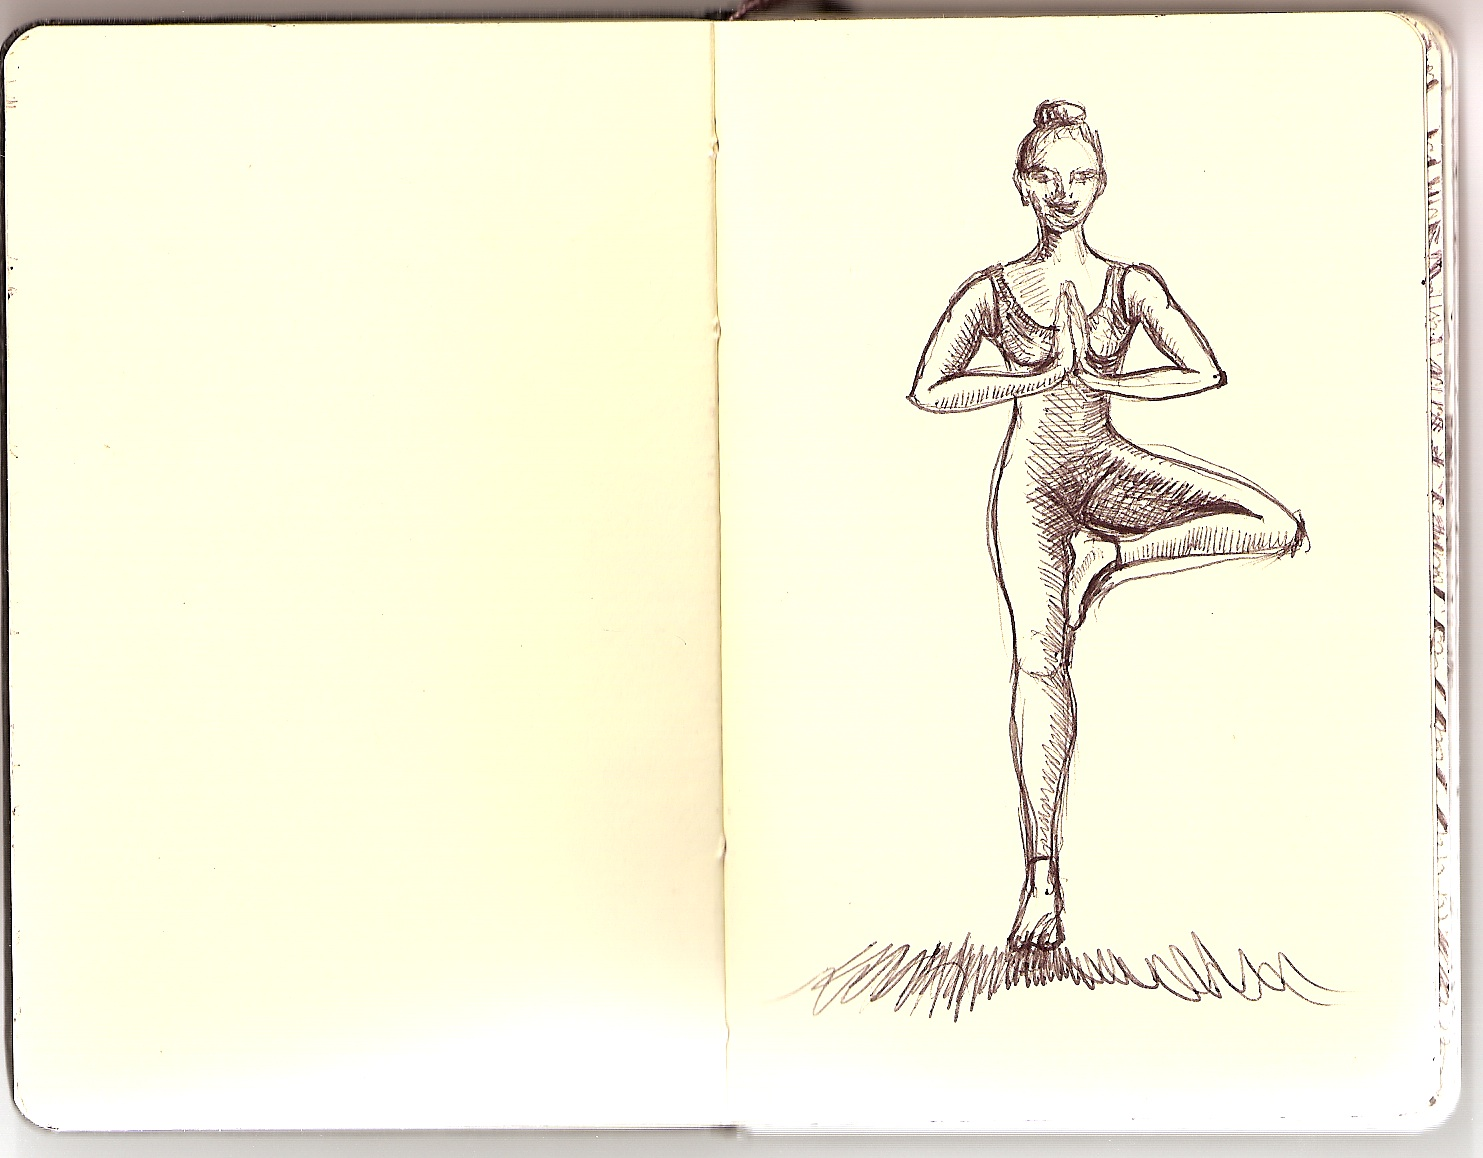 vikrasana, as the pose appears on the outside